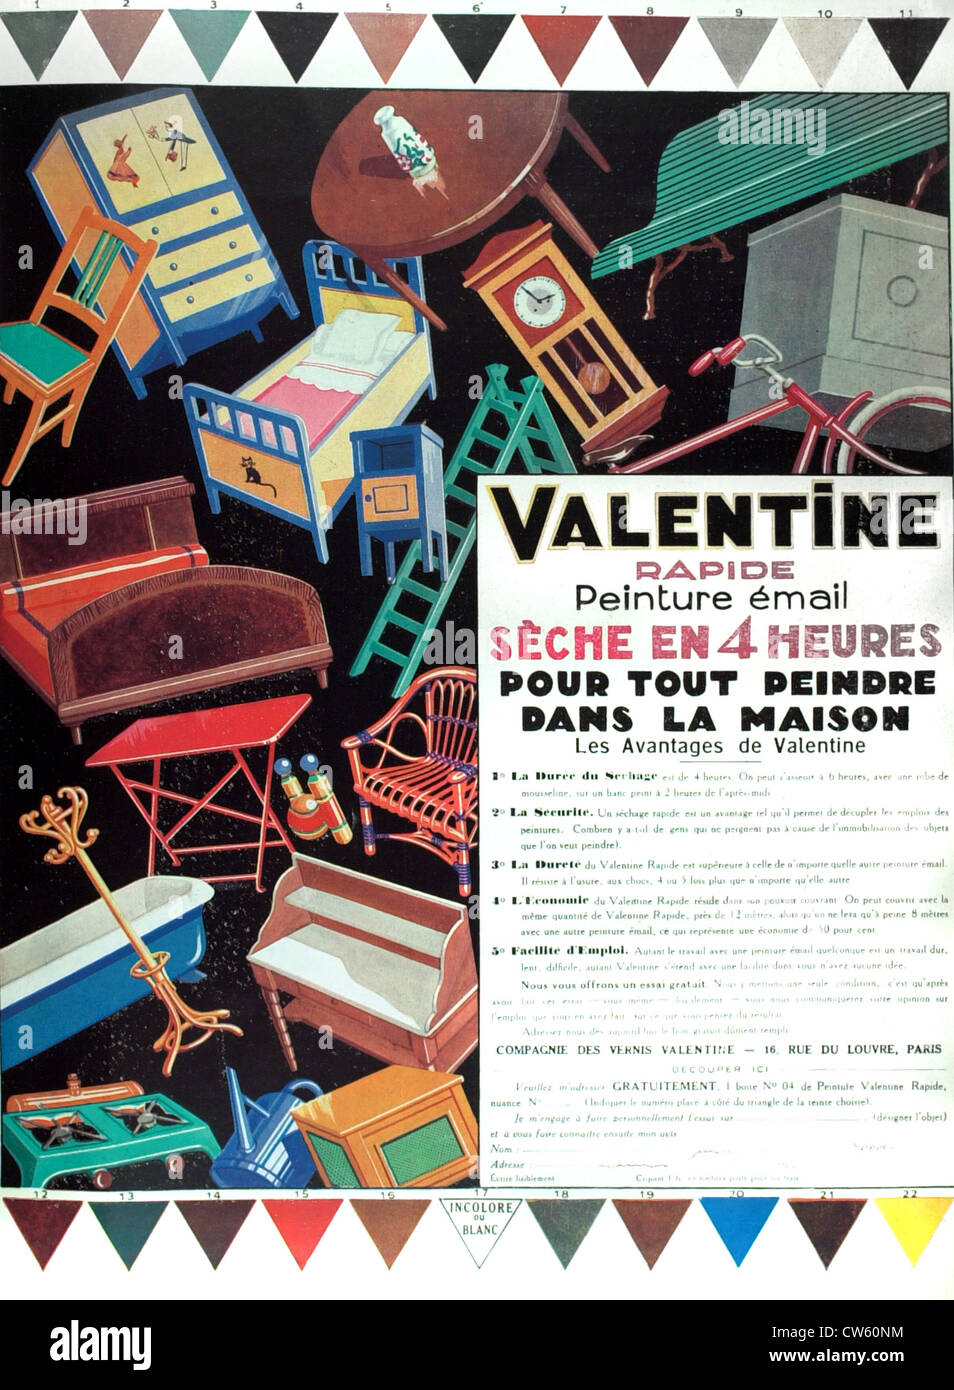 Advertising for 'Valentine' paints - Stock Image